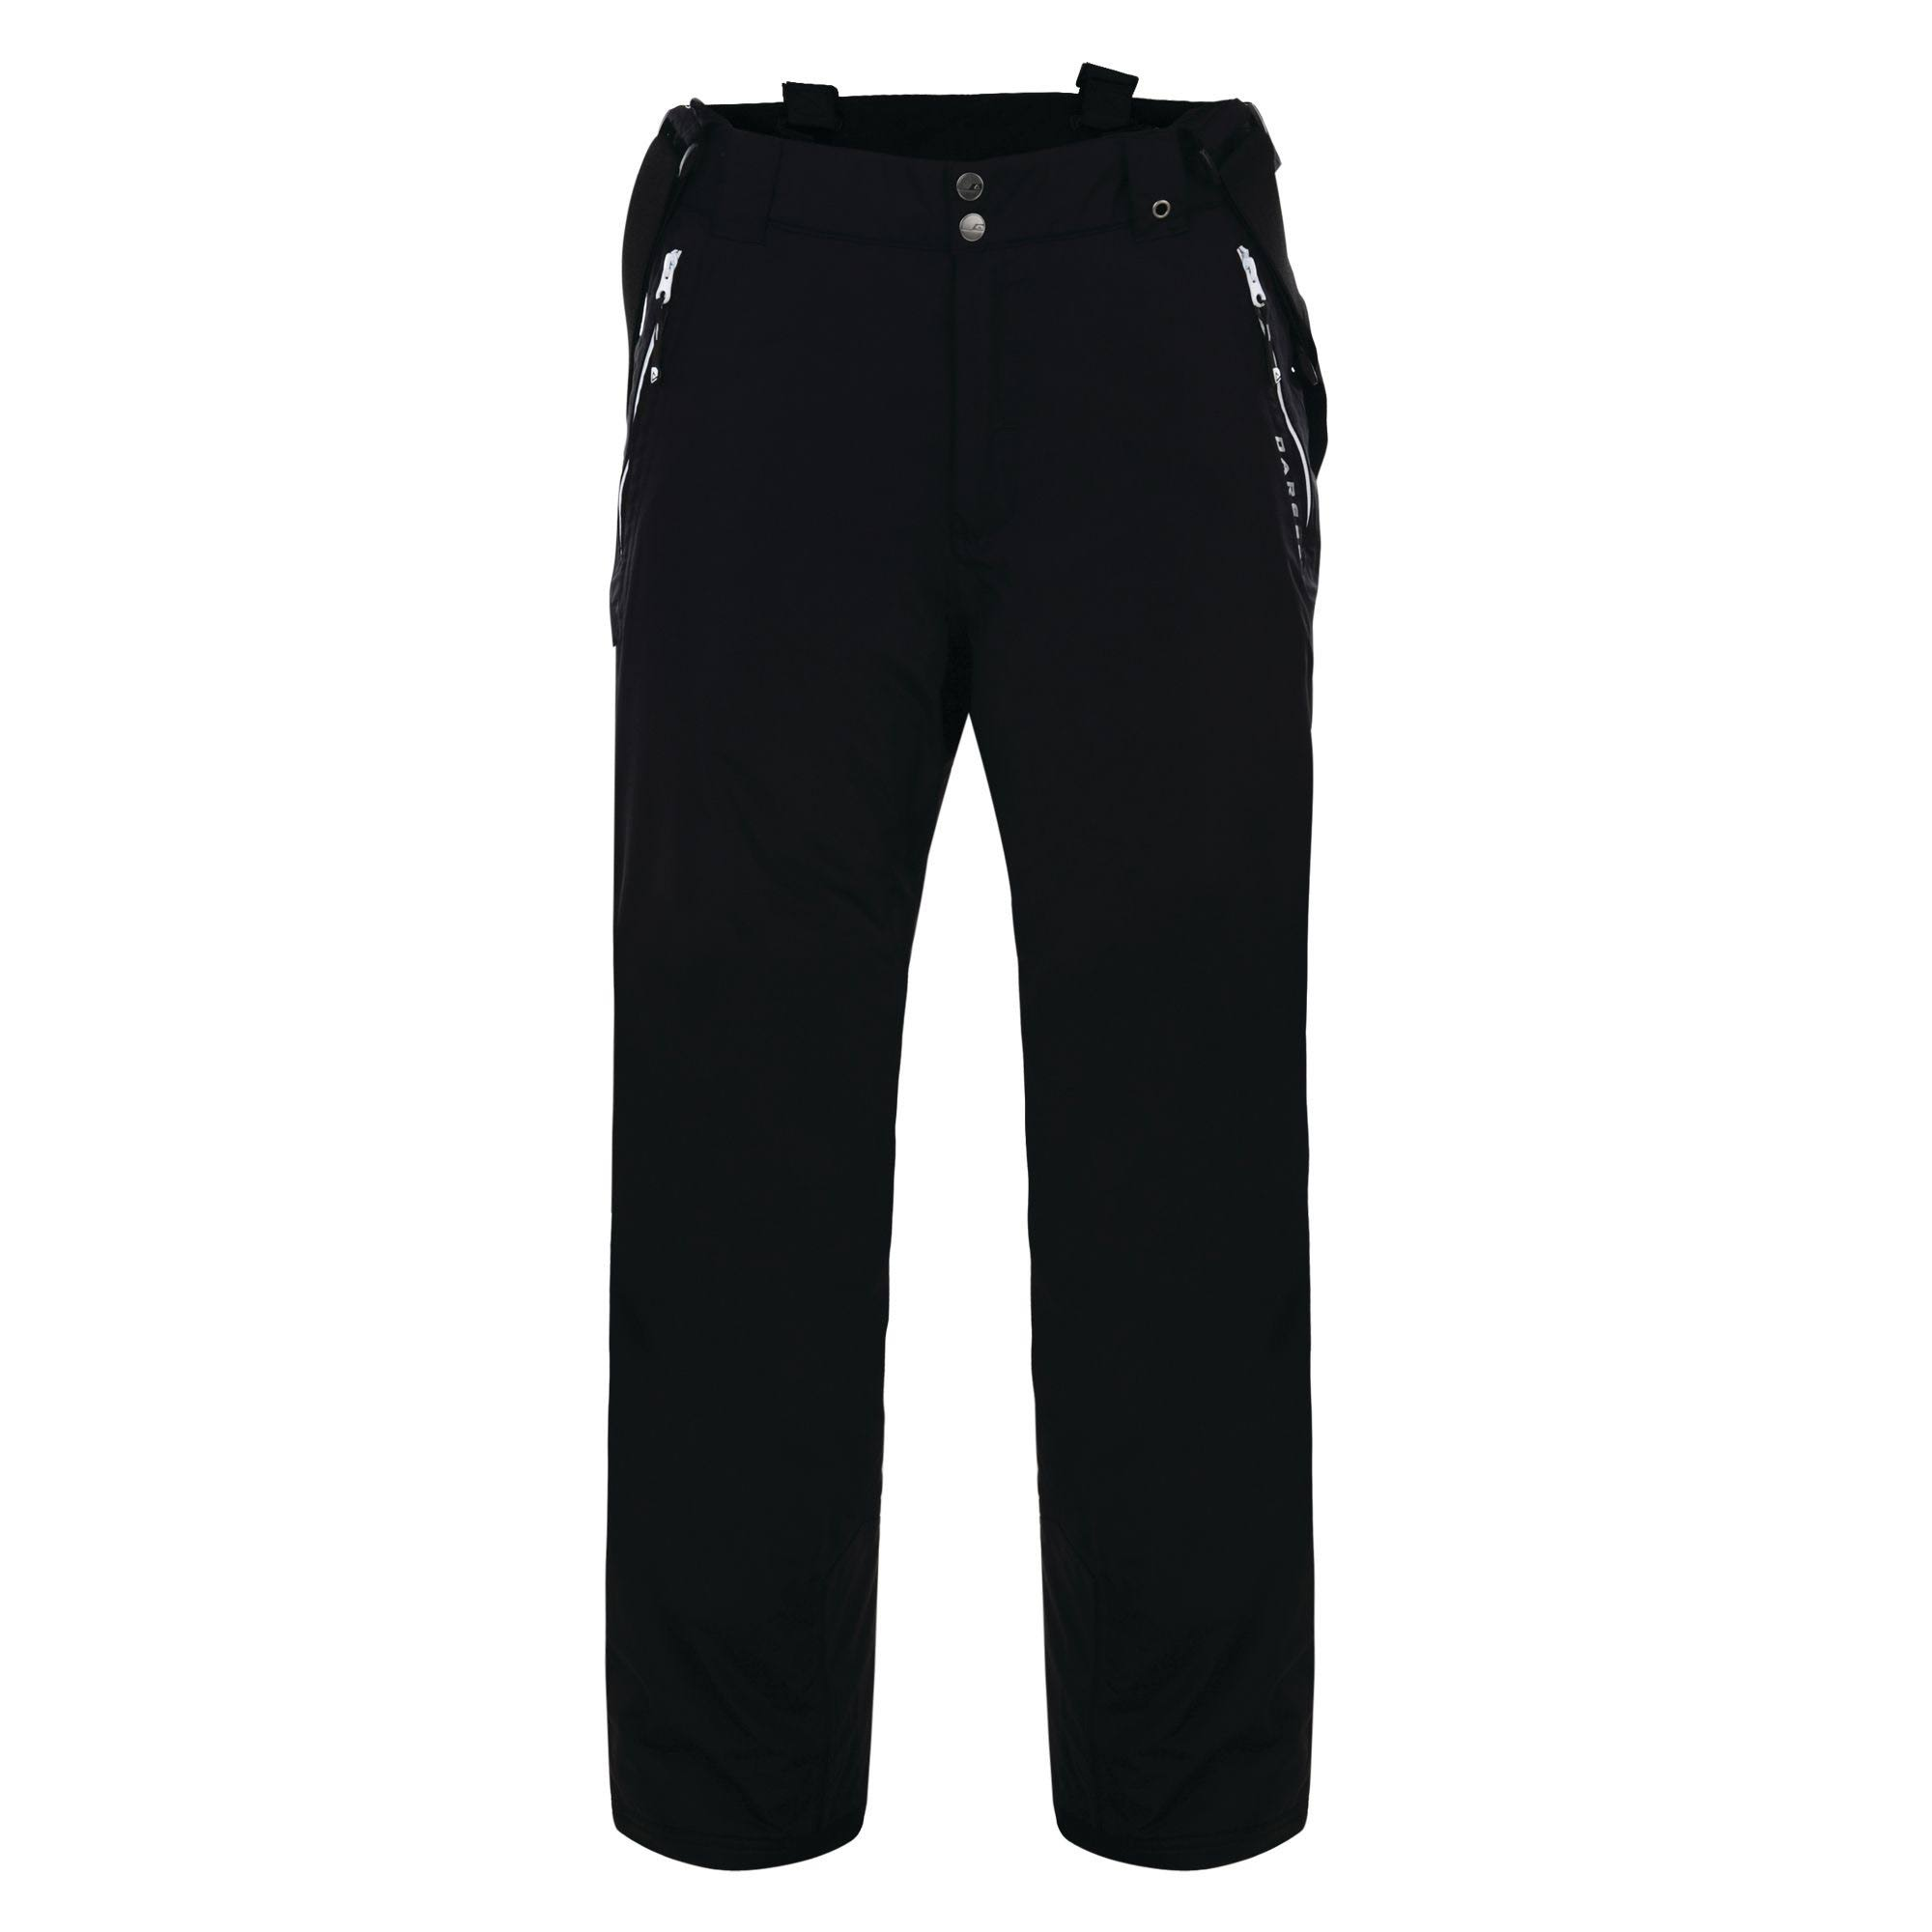 Dare2b Keep Up III Mens Ski Pants (Black) M